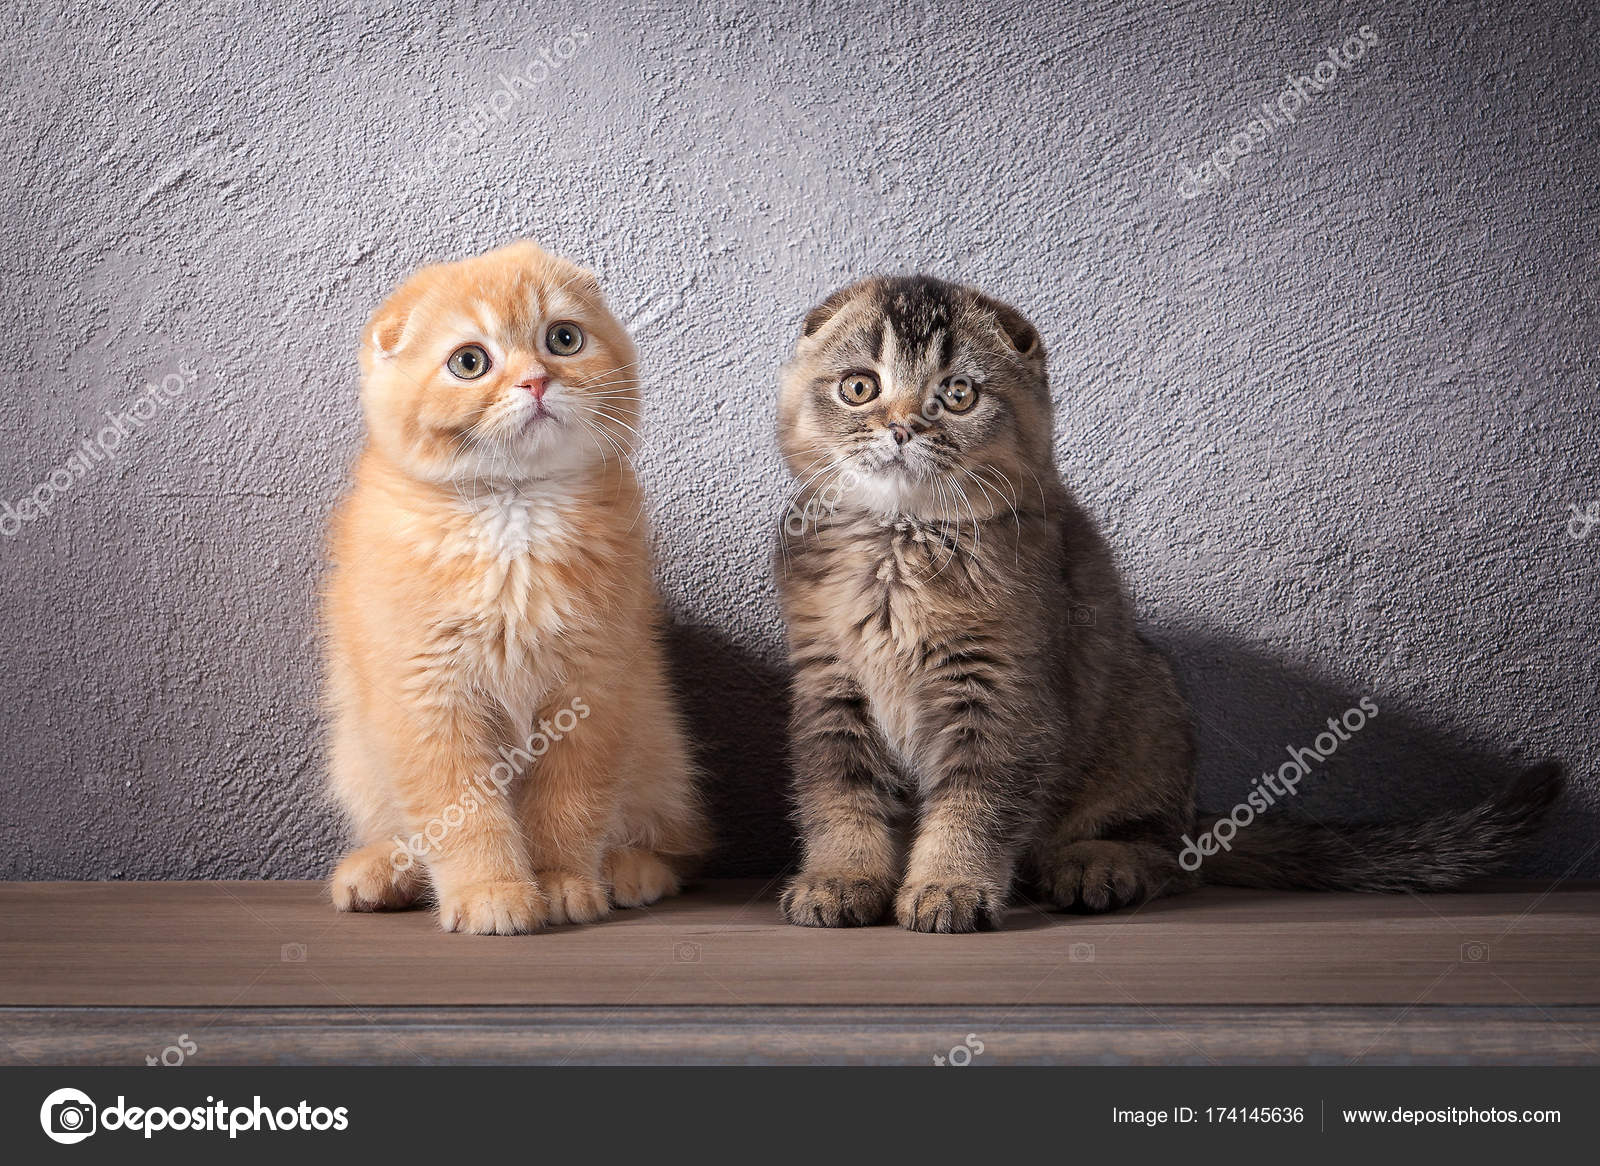 Cat Several Scottish Fold Kittens On Wooden Table And Textured Stock Photo C Dionoanomalia 174145636